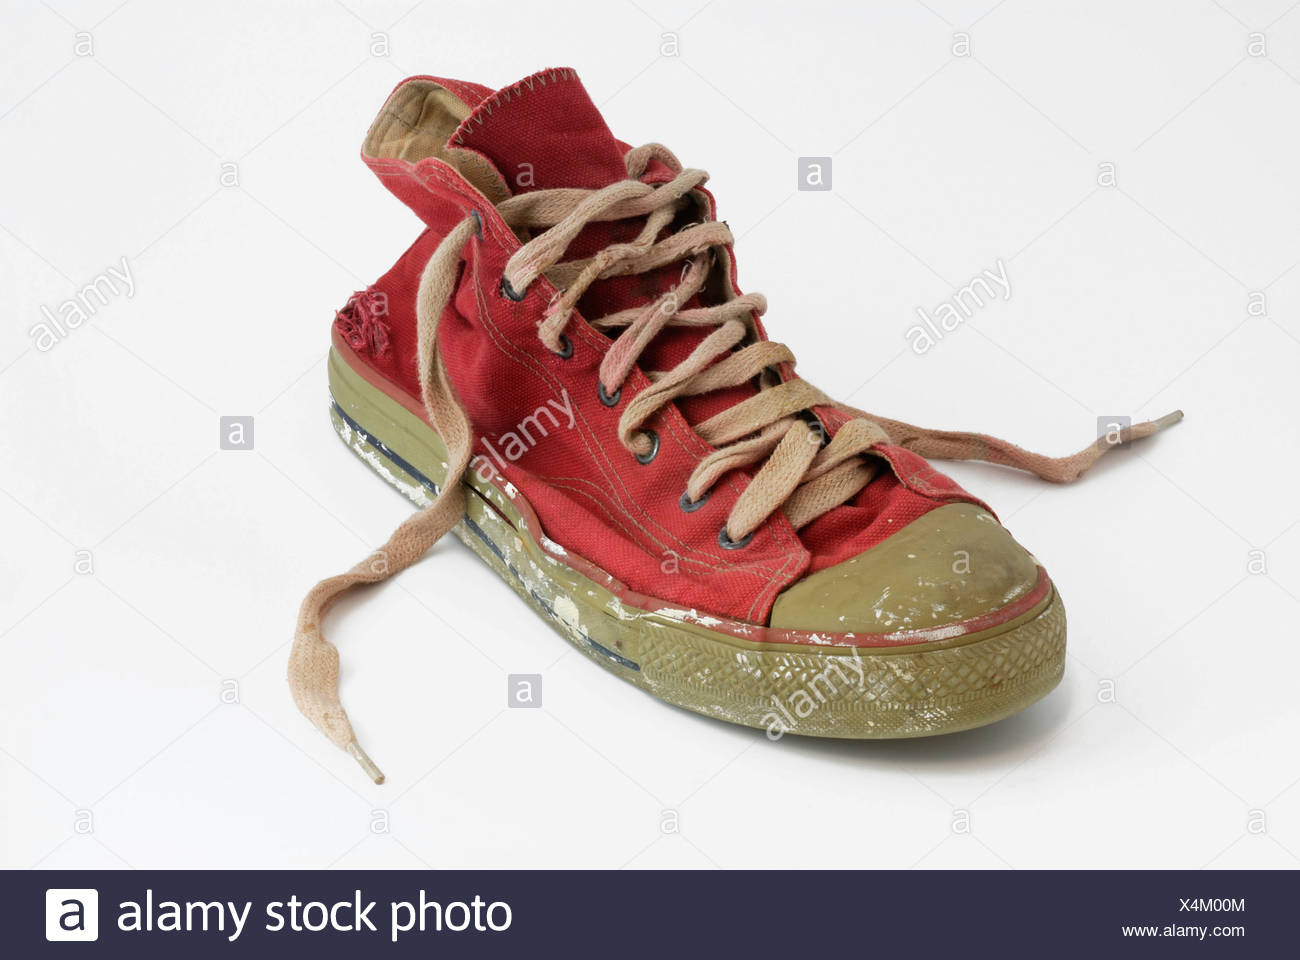 Worn-out red sneaker - Stock Image